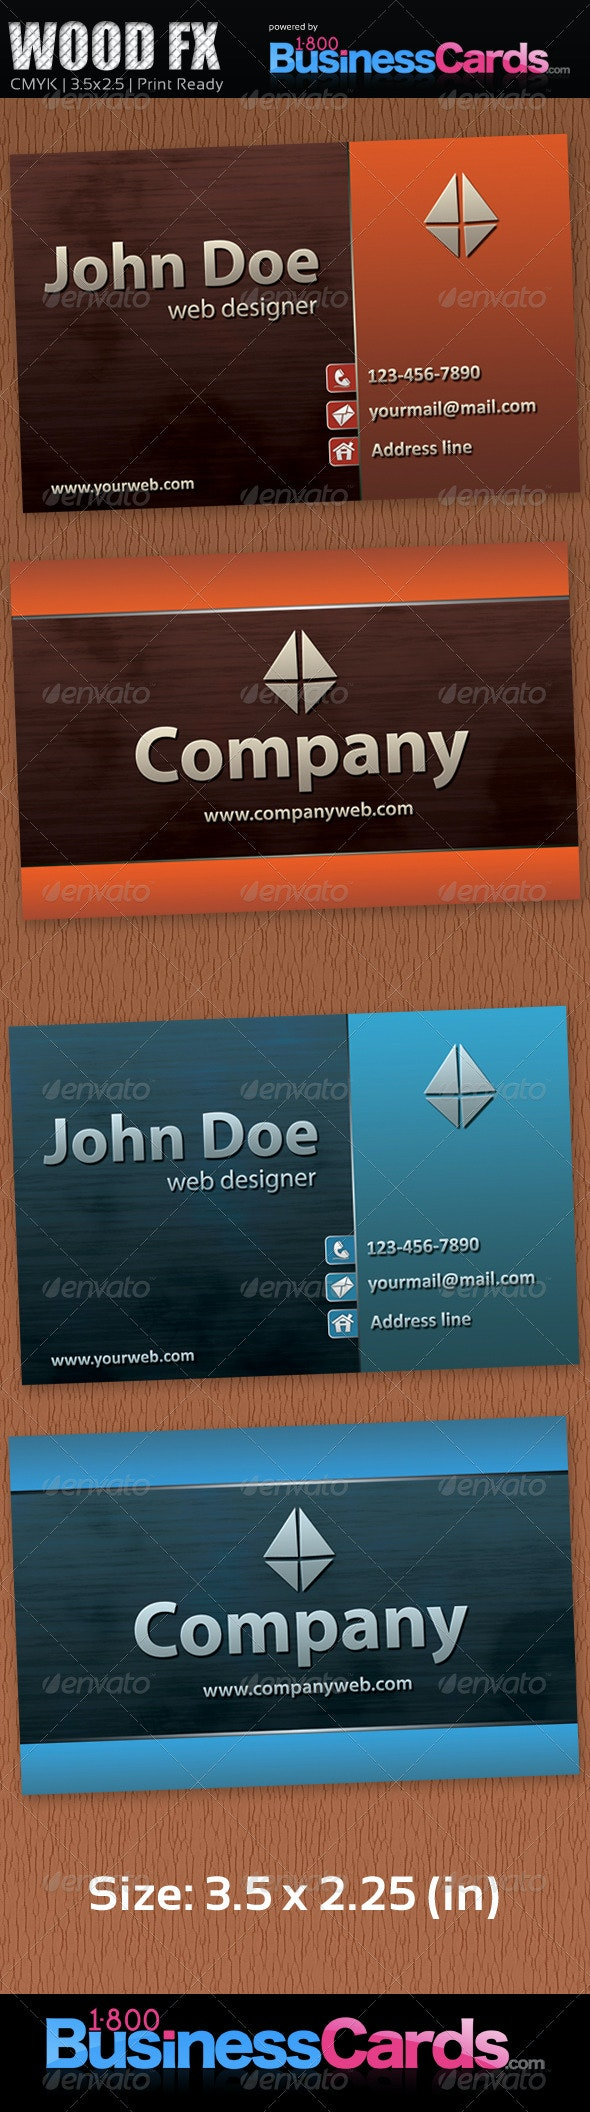 Wood Fx Business Card - Creative Business Cards